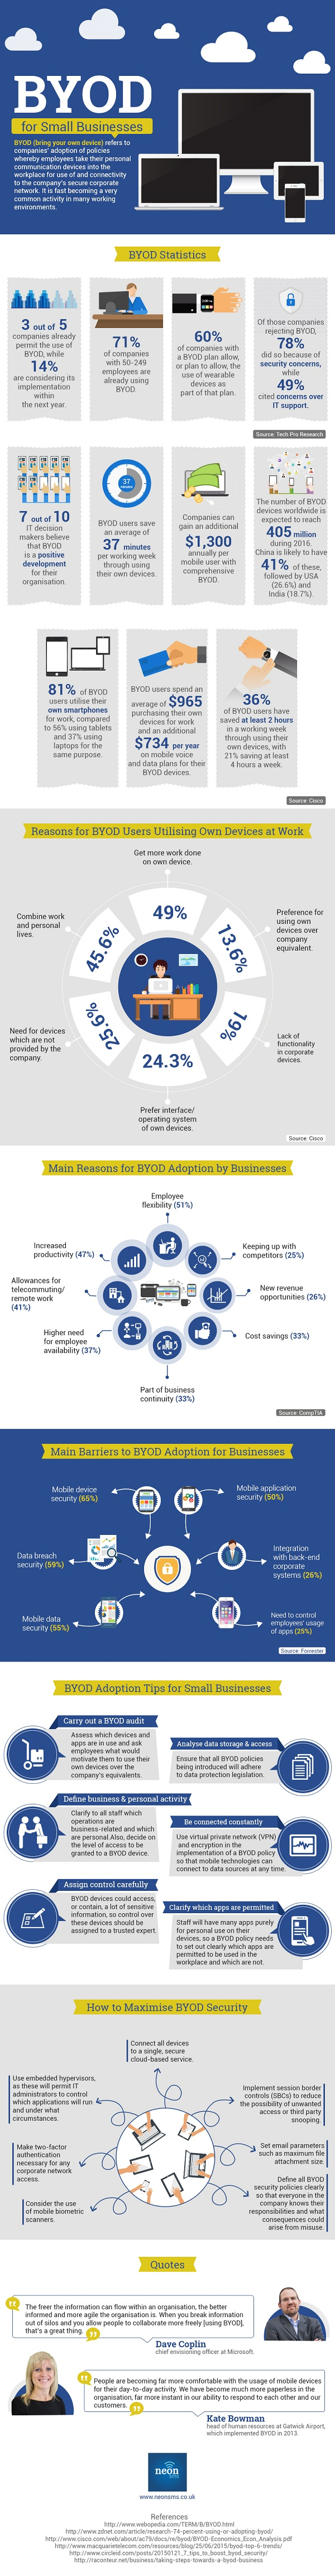 BYOD-for-Small-Businesses-Infographic